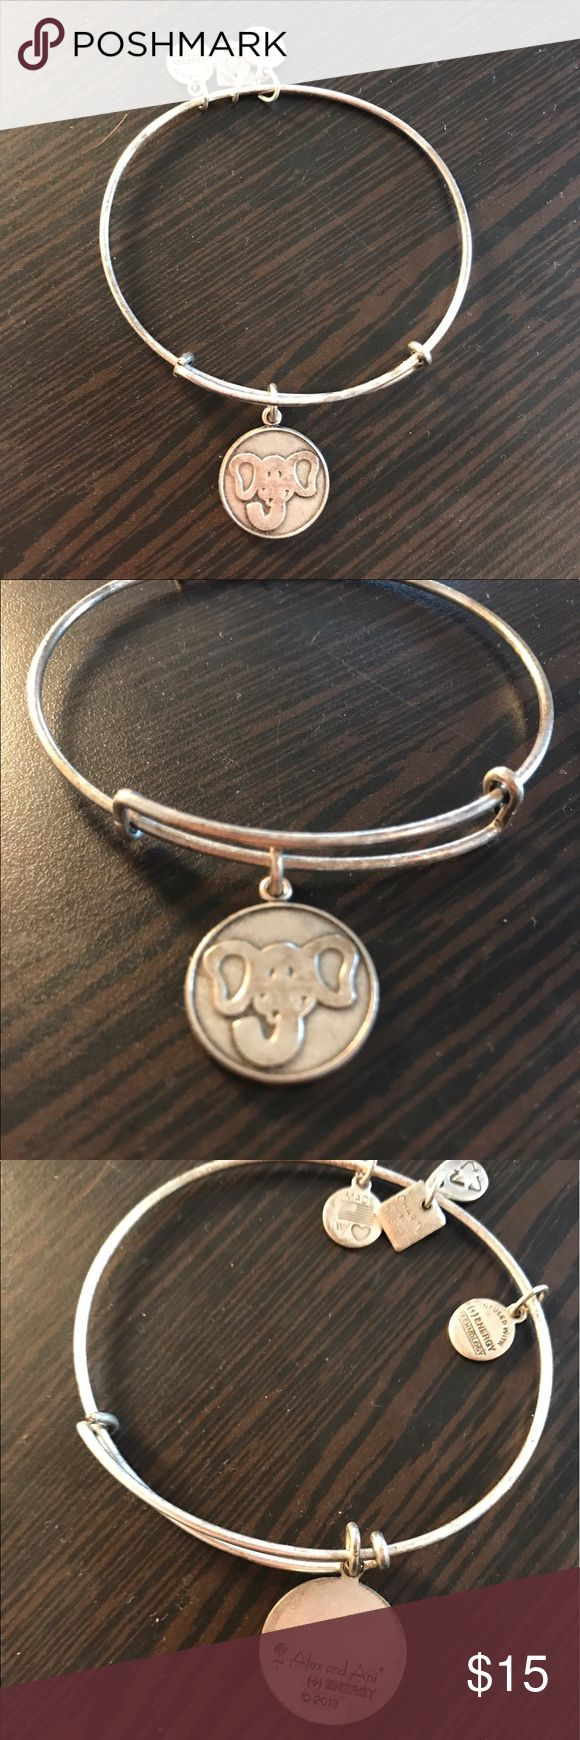 Alex & Ani silver elephant bangle Alex & Ani silver bangle with an elephant charm. It's a little tarnished as you can see in the pictures. Adjustable sizing and a cute little bangle! Alex & Ani Jewelry Bracelets